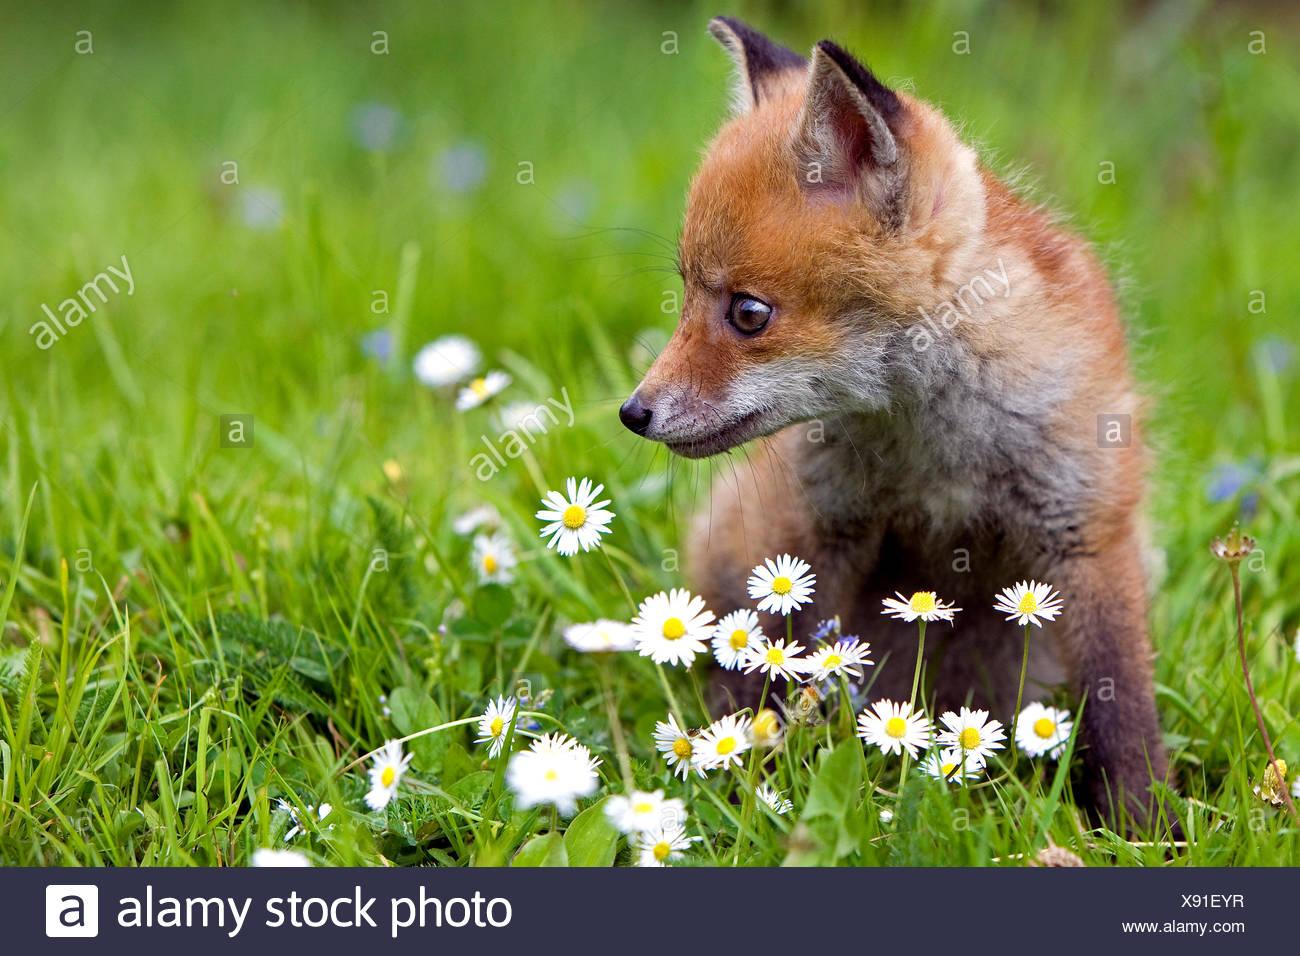 RED FOX vulpes vulpes, CUB WITH DAISIES, NORMANDY - Stock Image